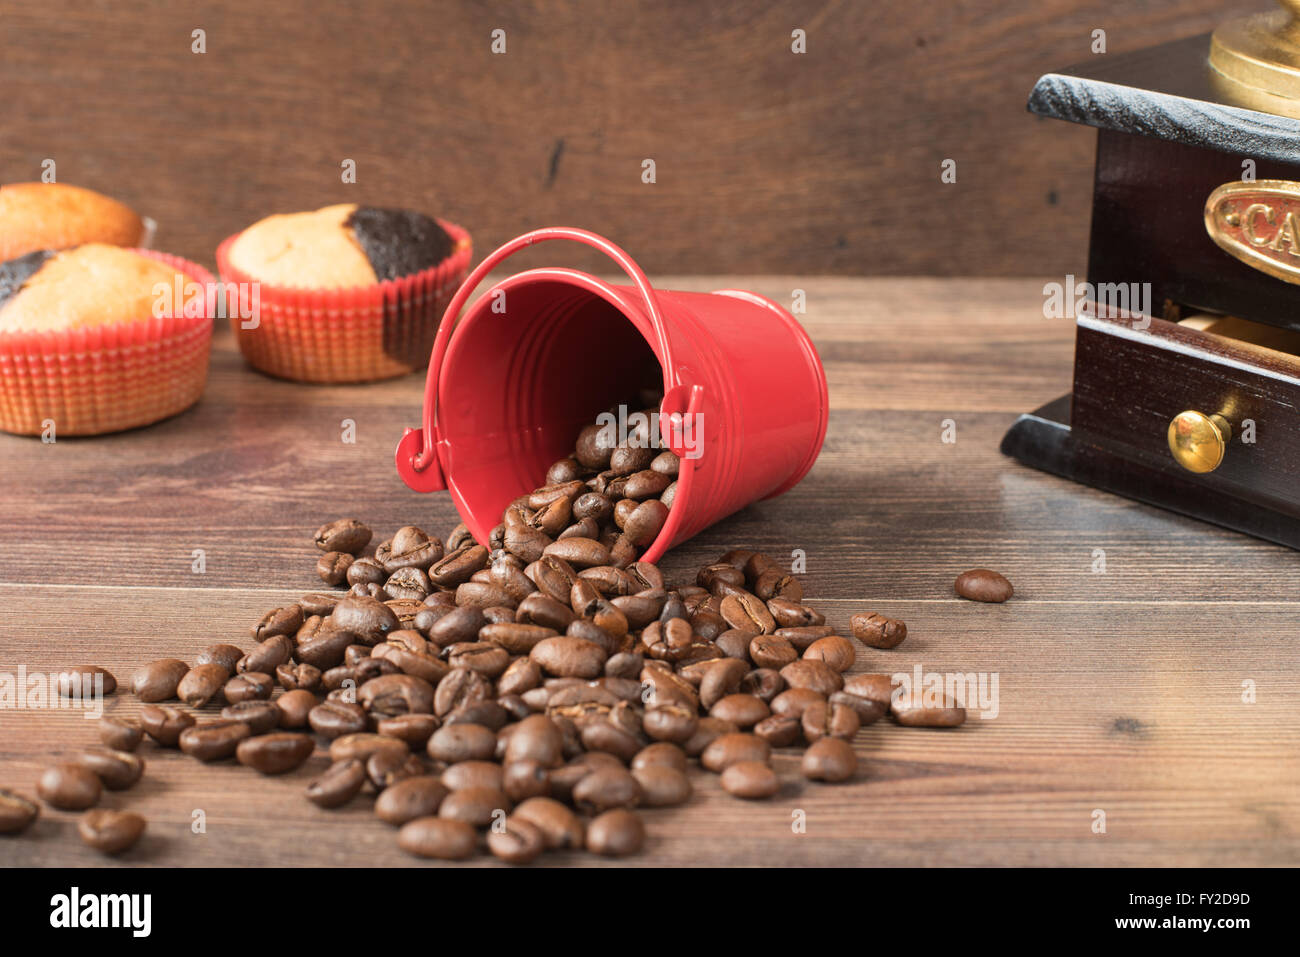 Retro coffee grinder, coffee mill coffee cup, chocolate cupcake, muffins, coffee beans. Still, restaurant, coffee - Stock Image